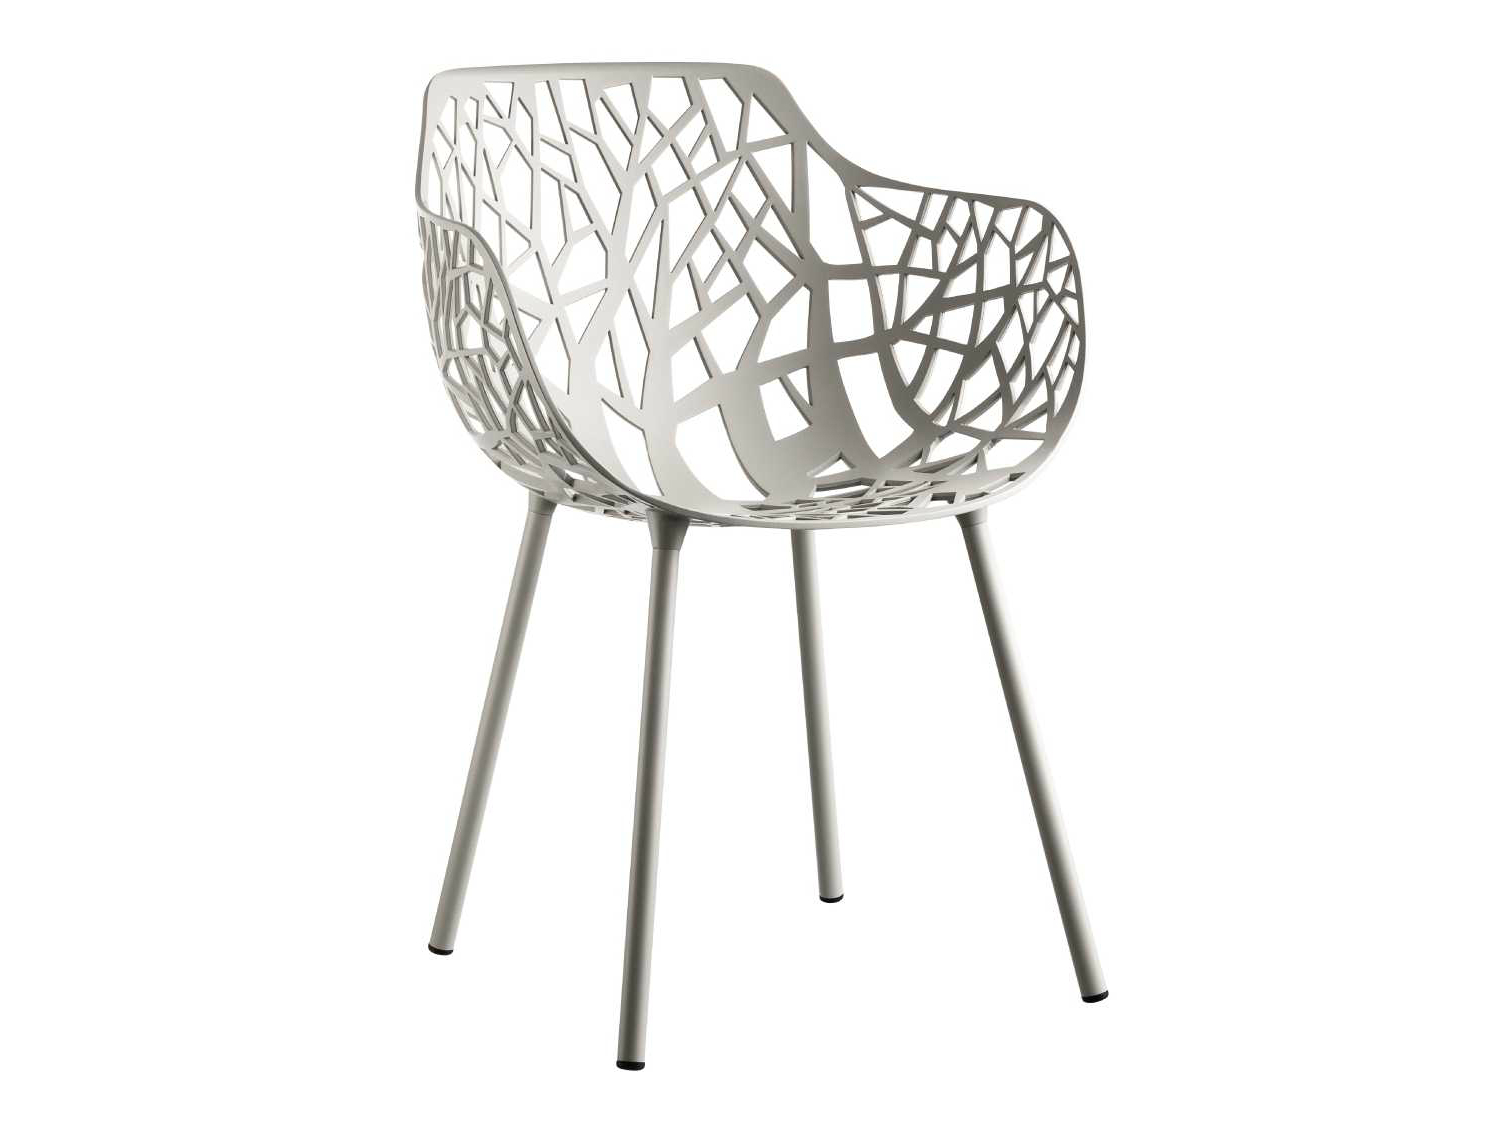 Fast-forest-armchair-stoel-powder-grey-2-def